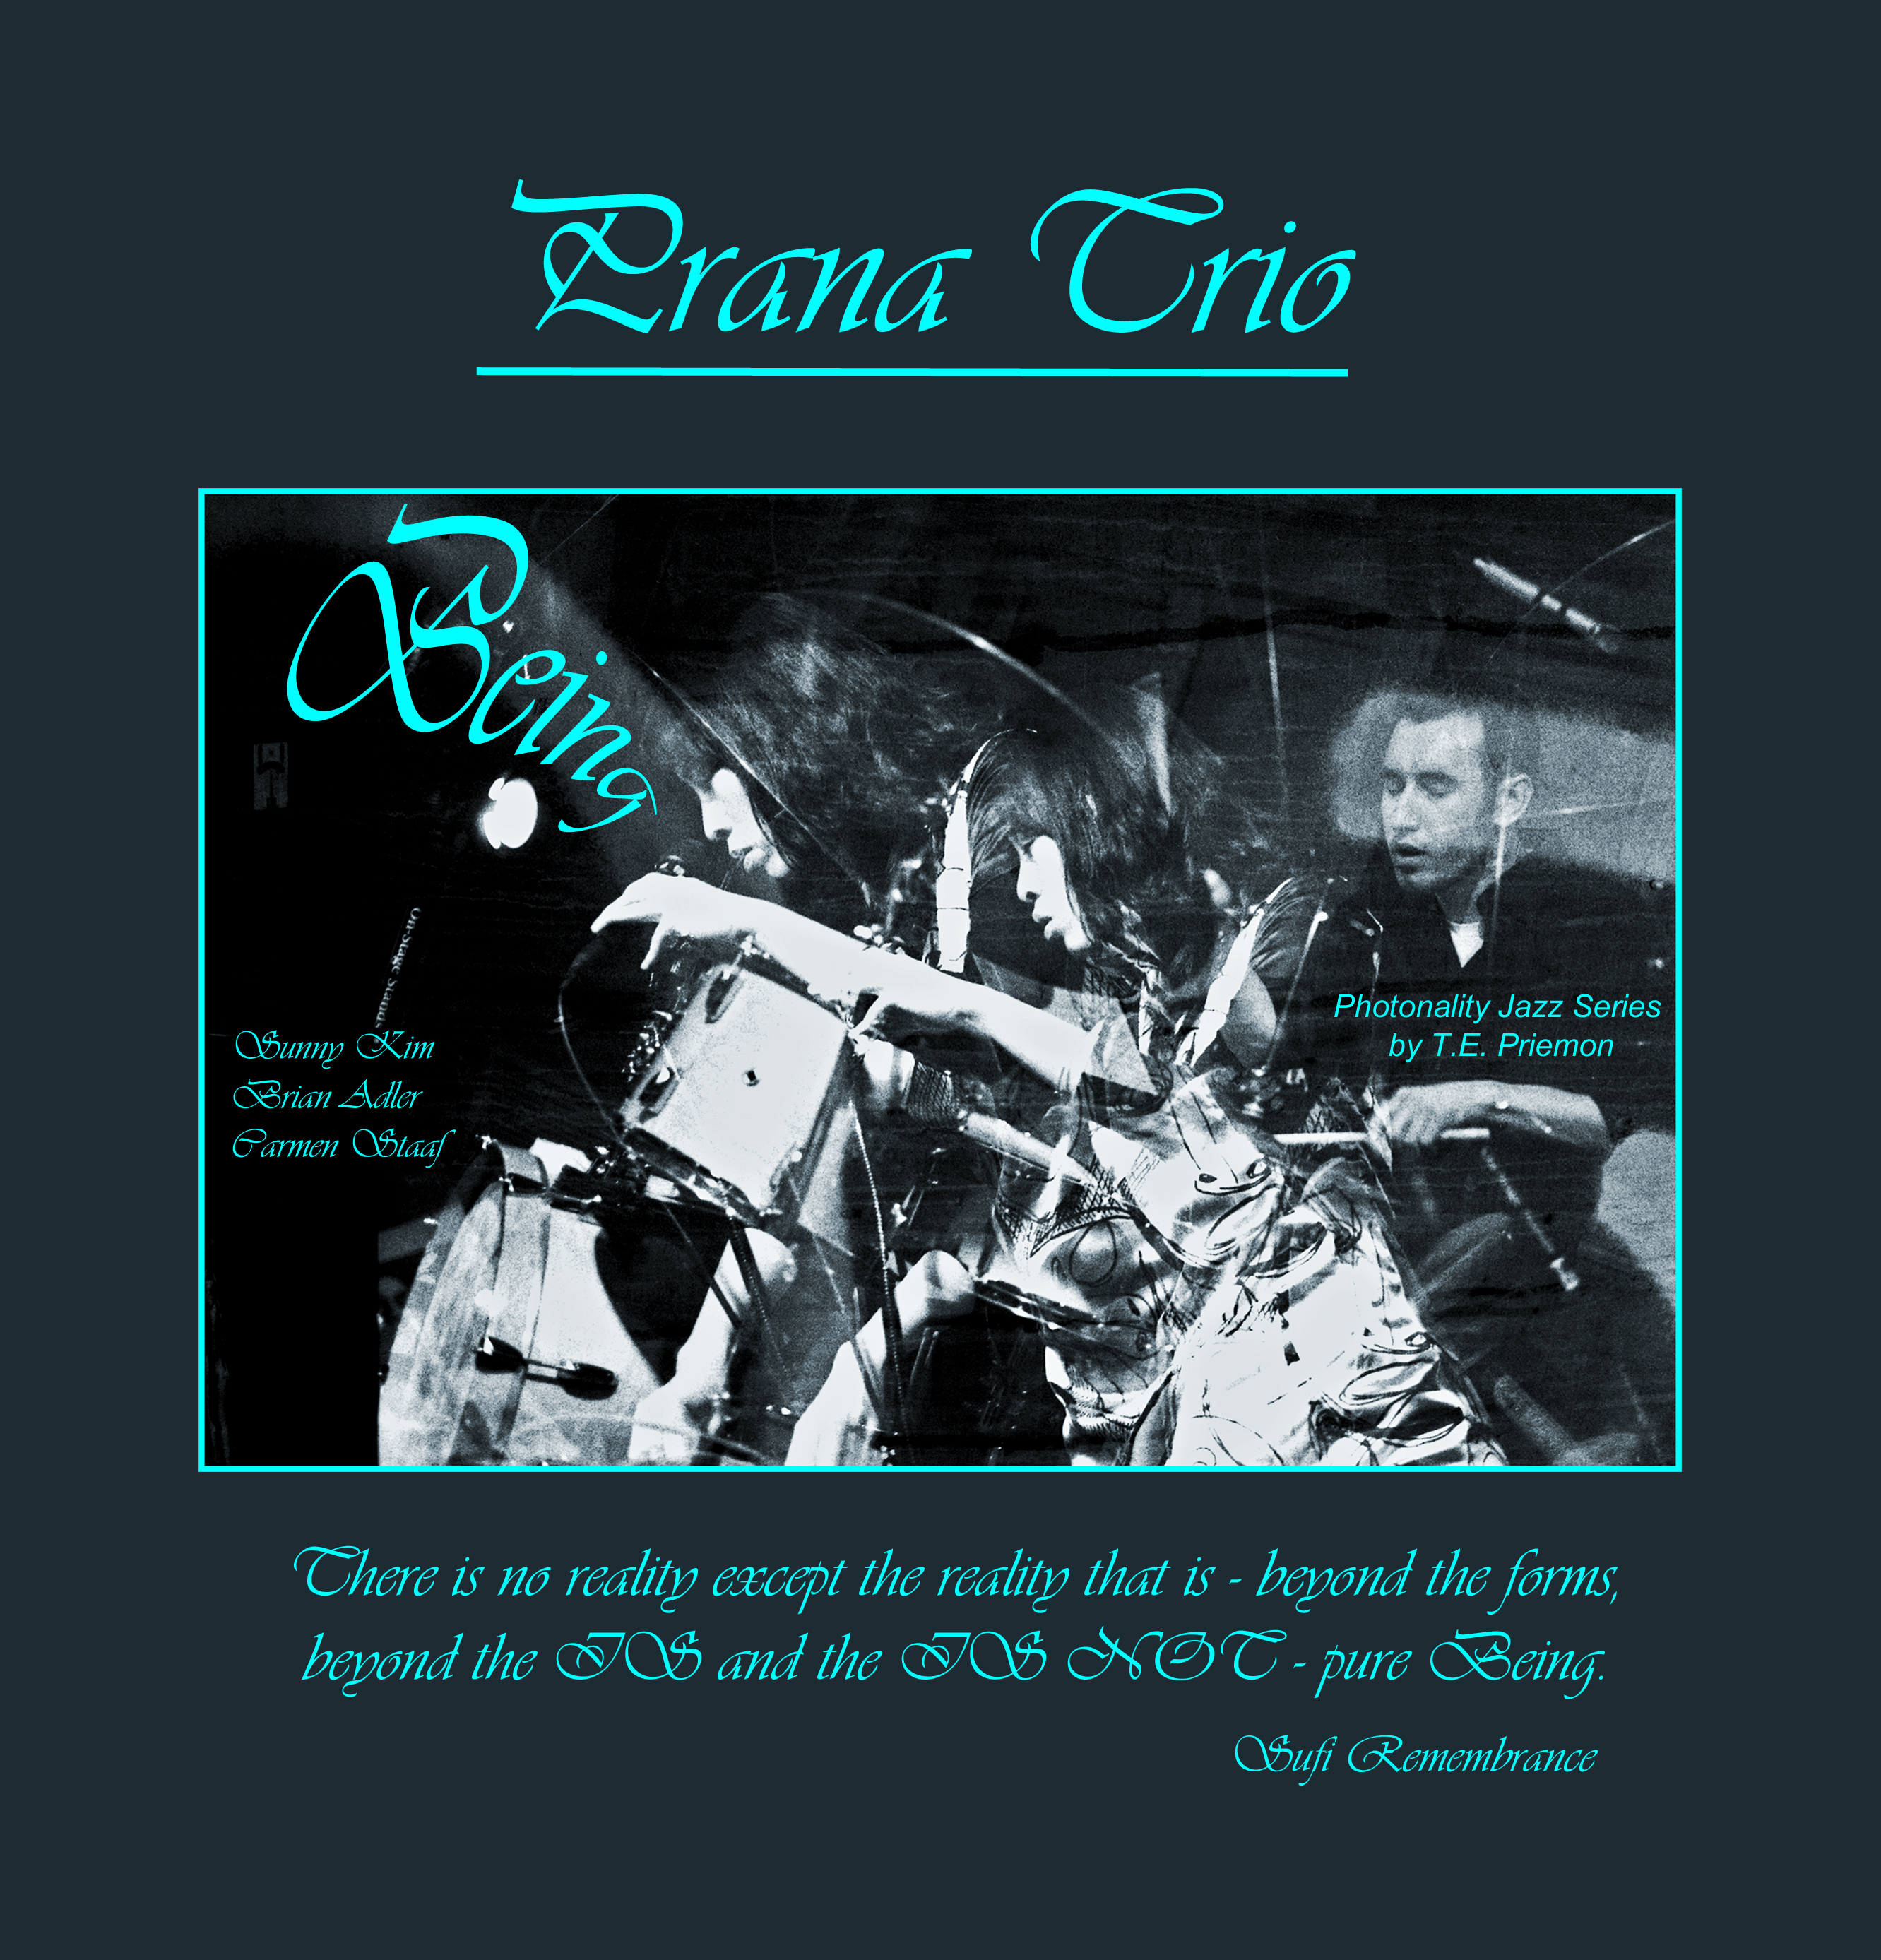 Being with Prana Trio